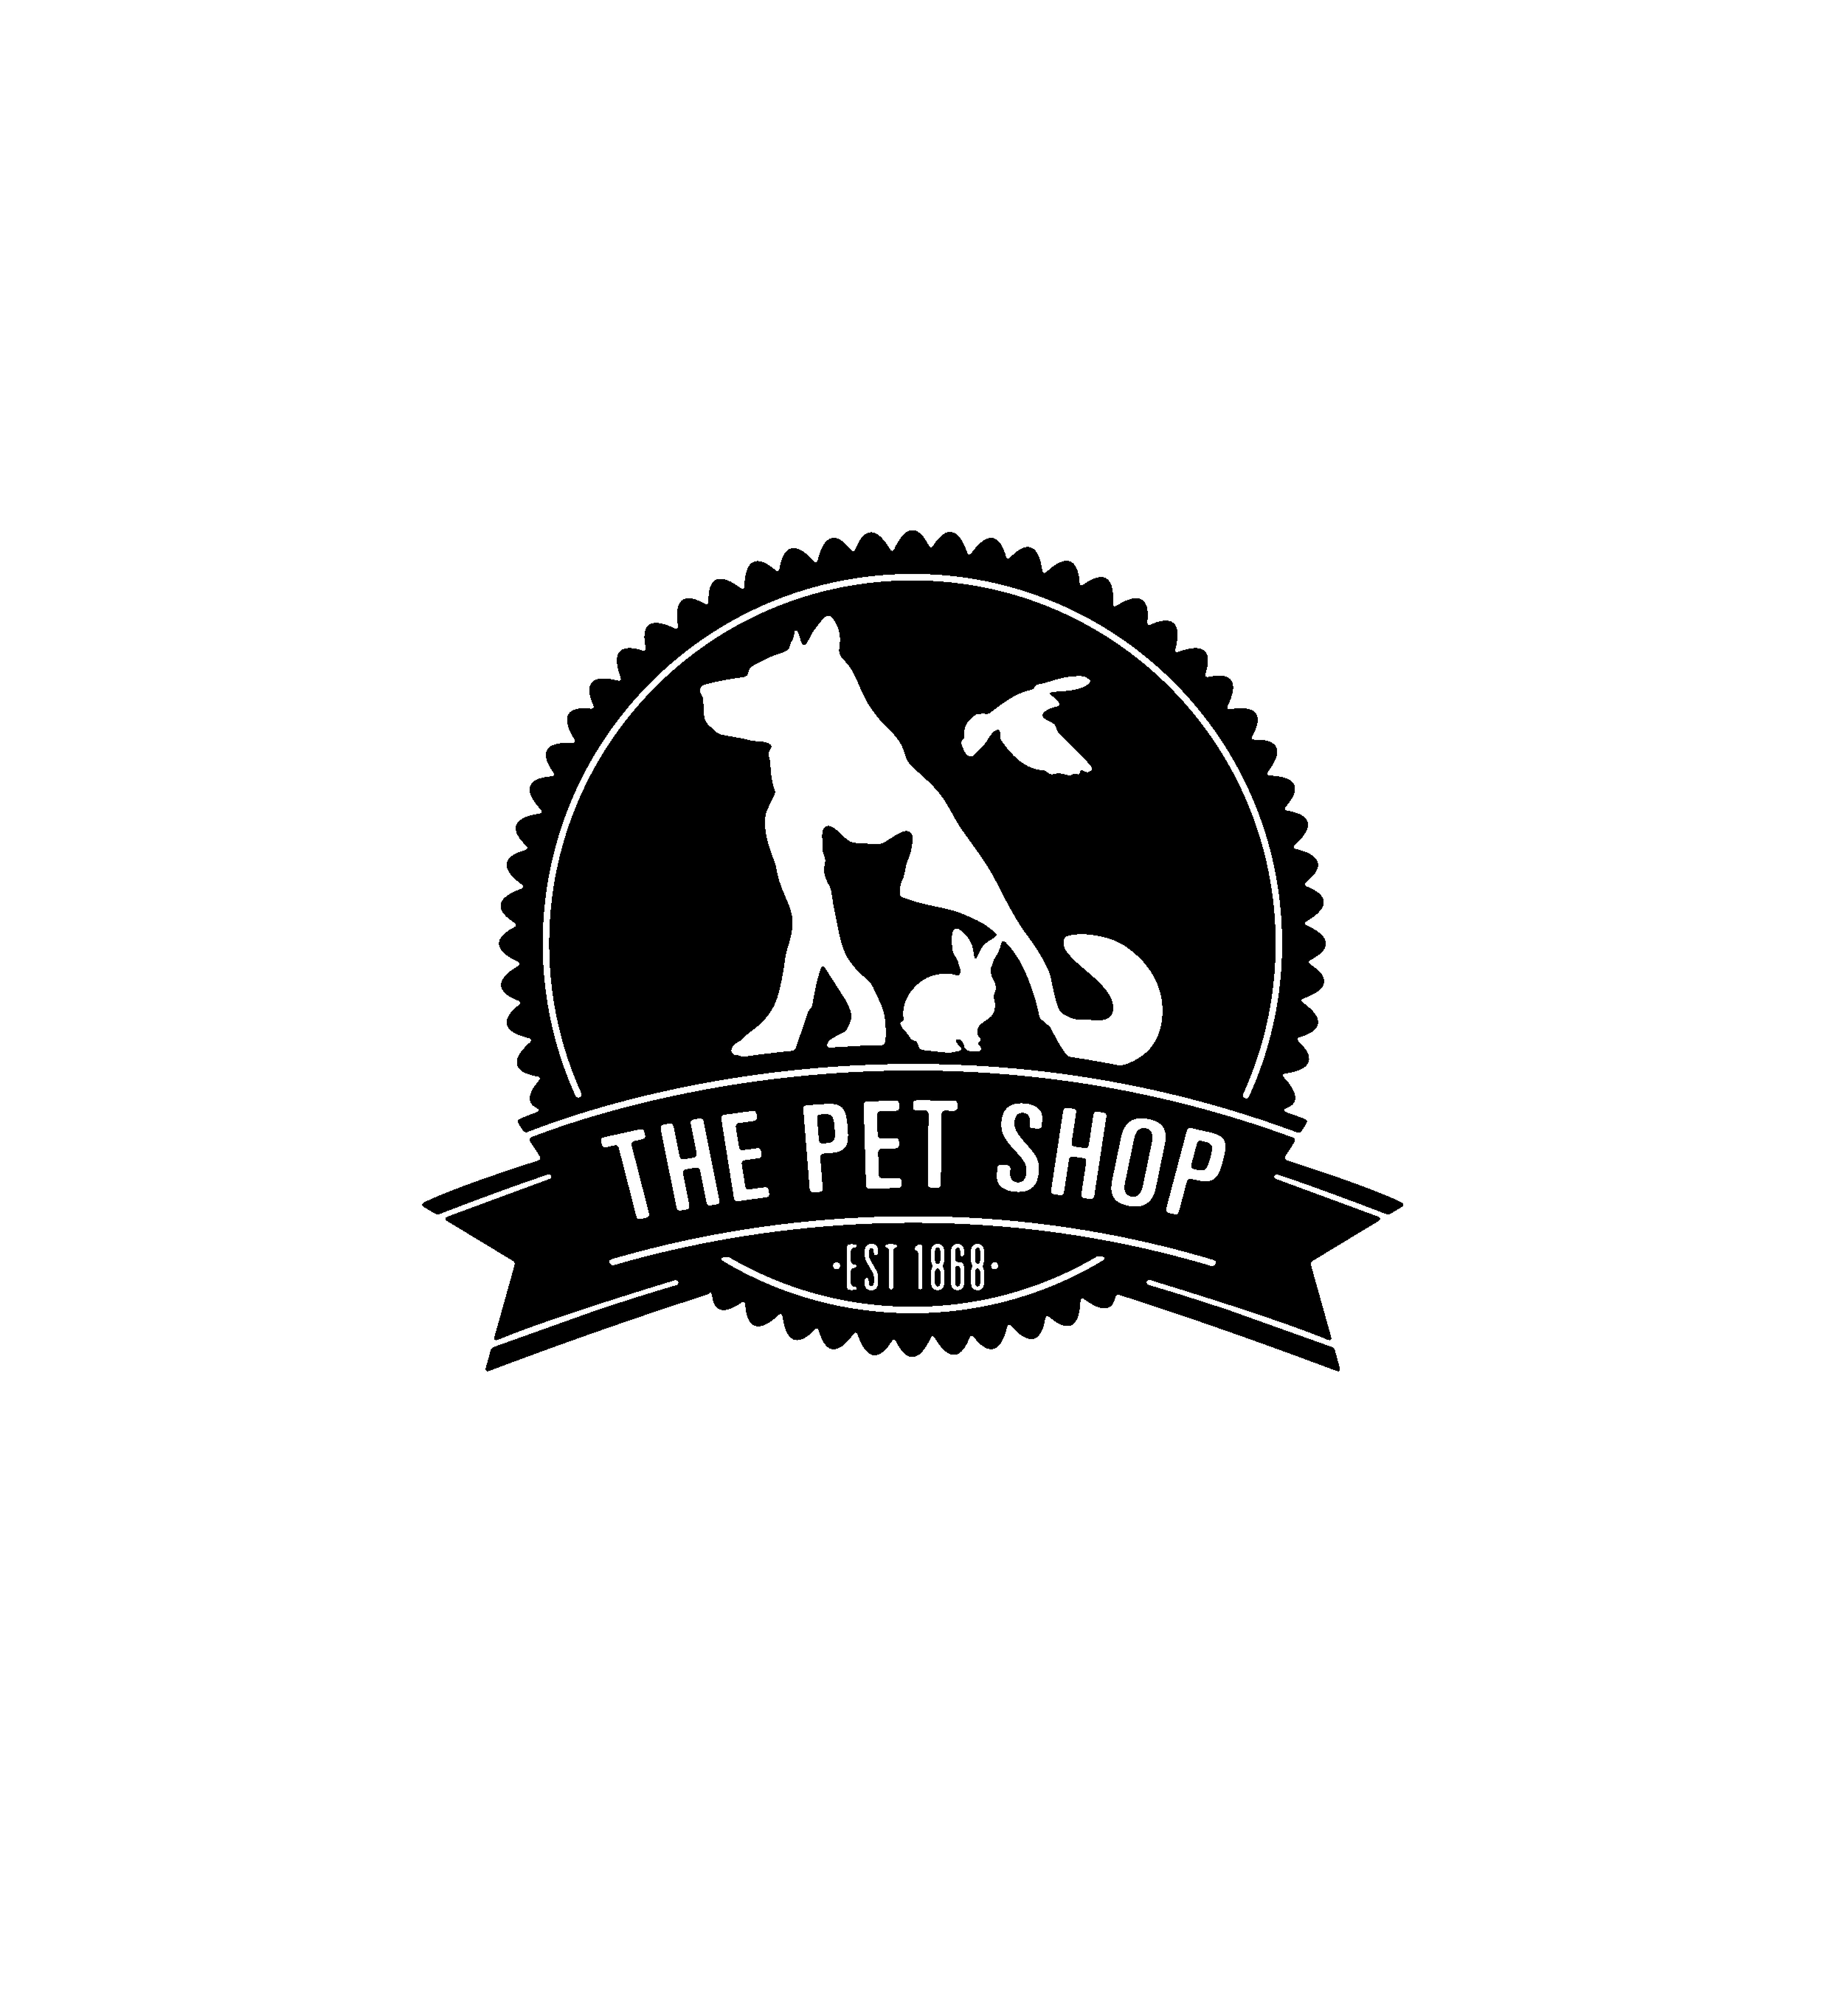 The Pet Shop, Ripon / logotype designed by Toby Designs